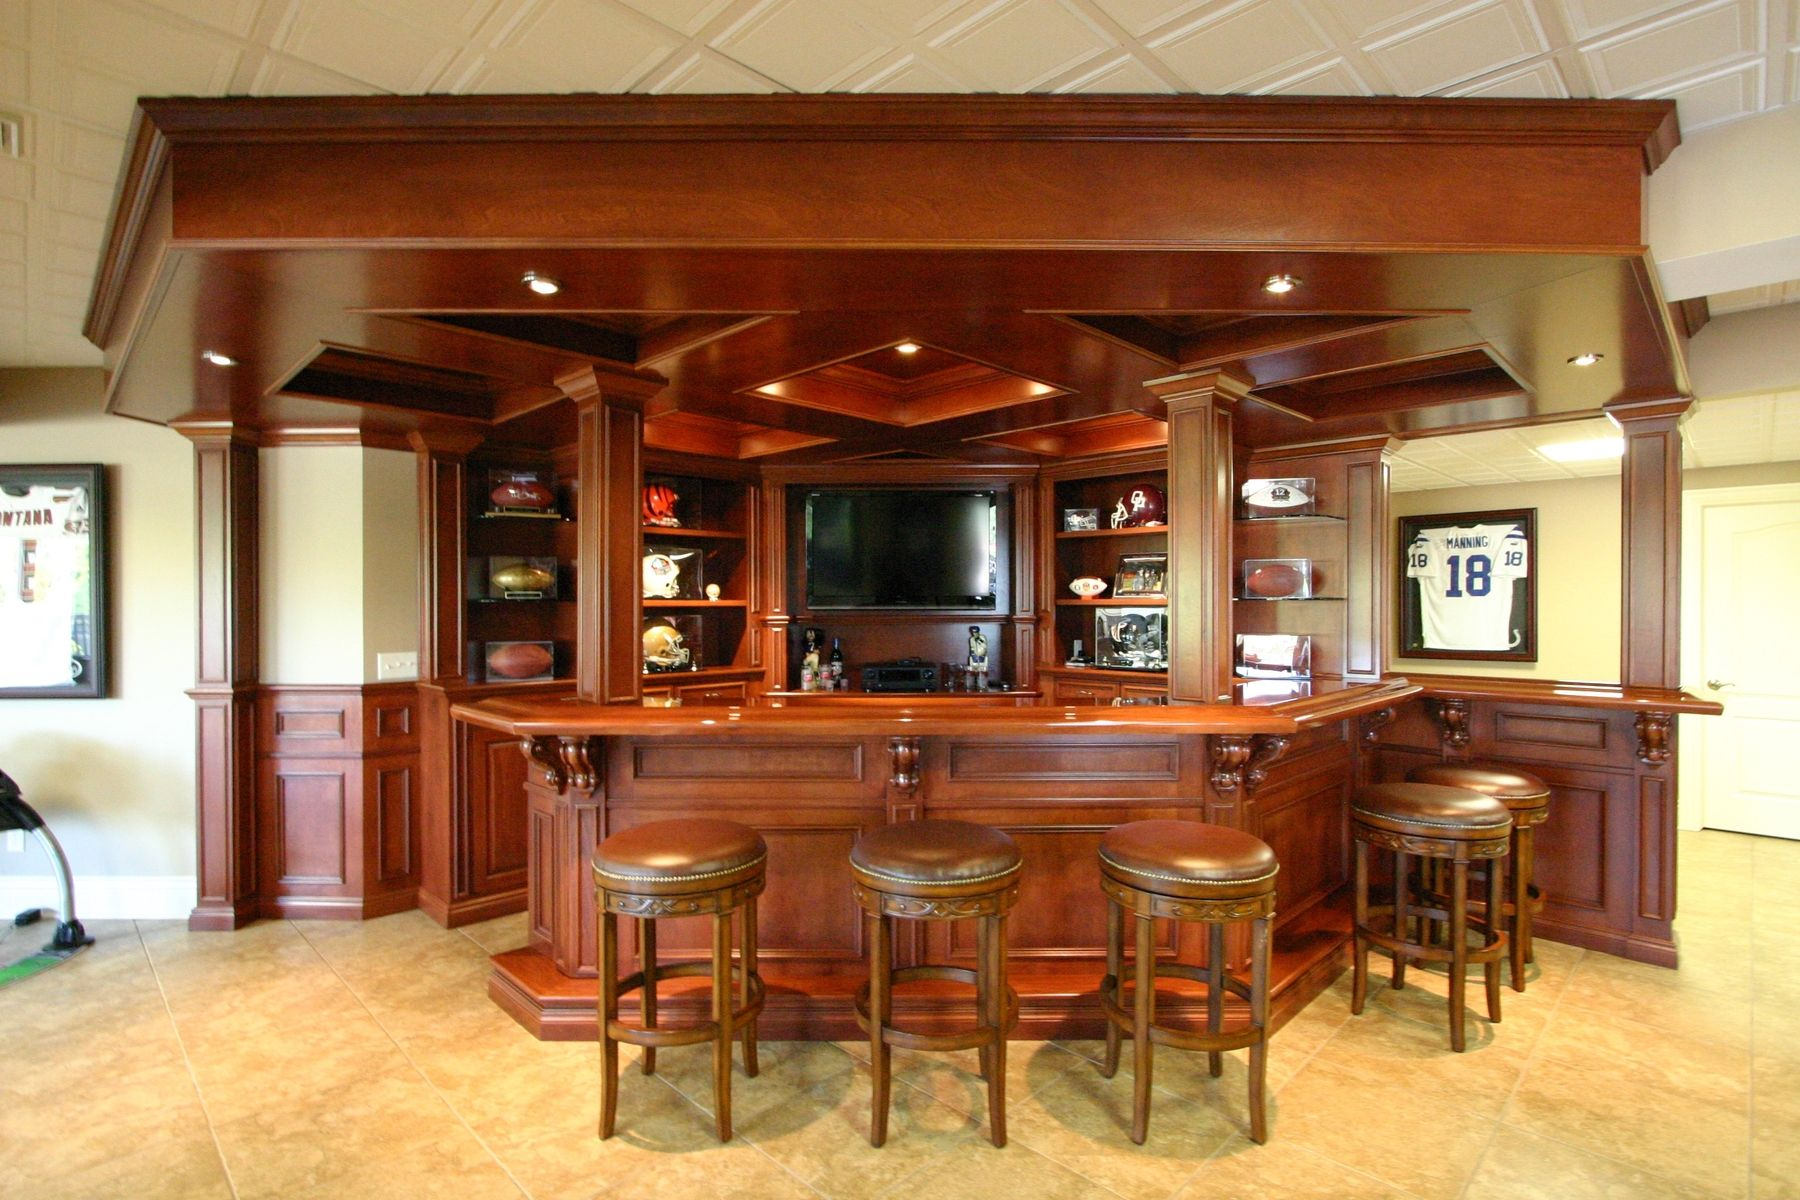 Main Bar Top Forms Angled U-shape Joins With Wall